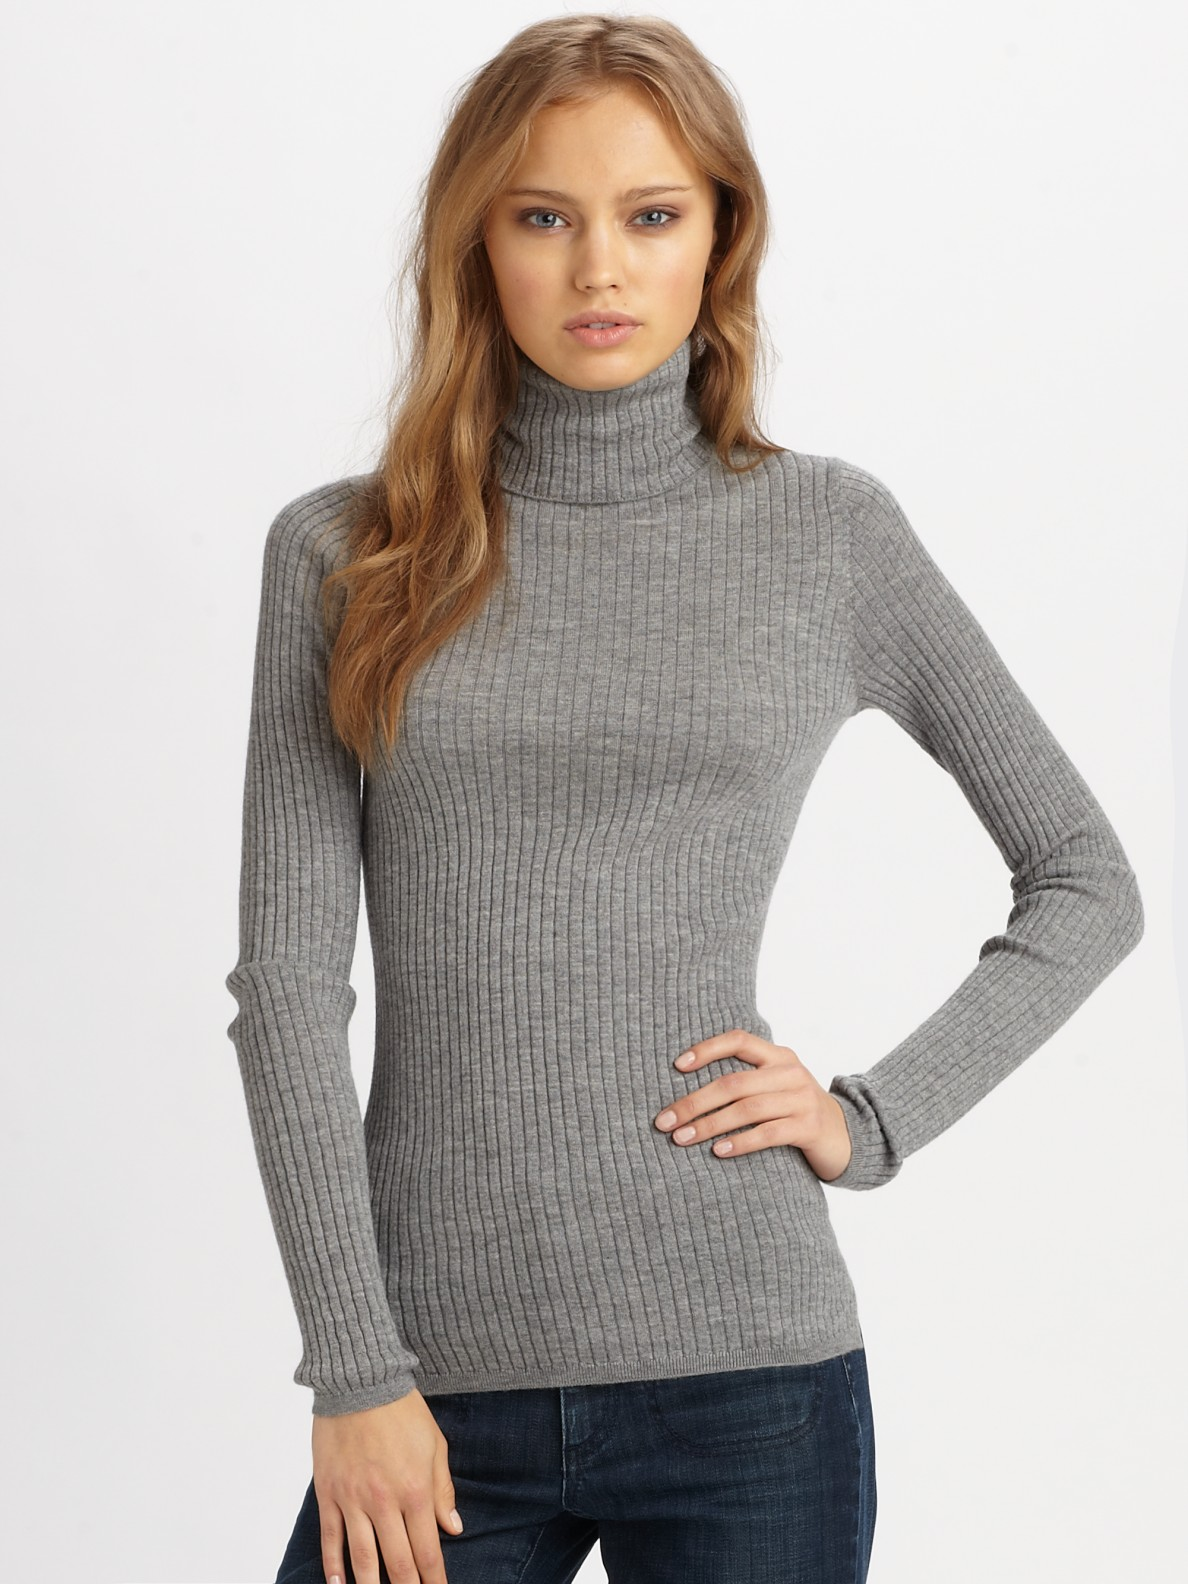 Turtlenecks Sweater - English Sweater Vest